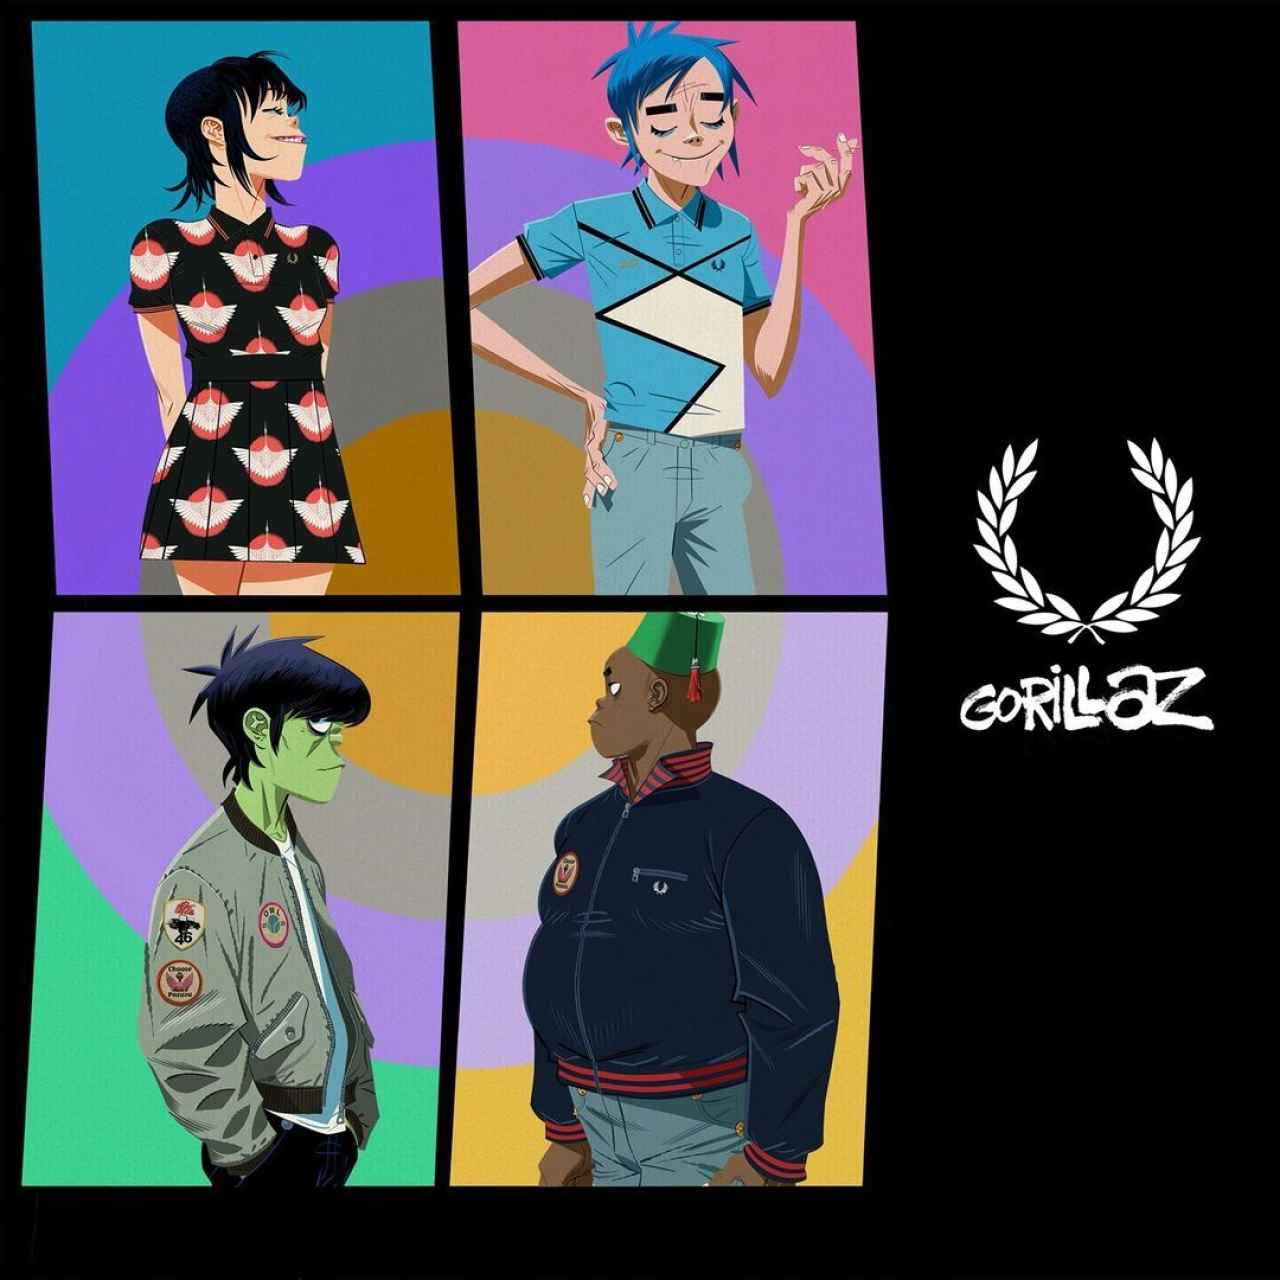 Some of the Fred Perry x Gorillaz creations.